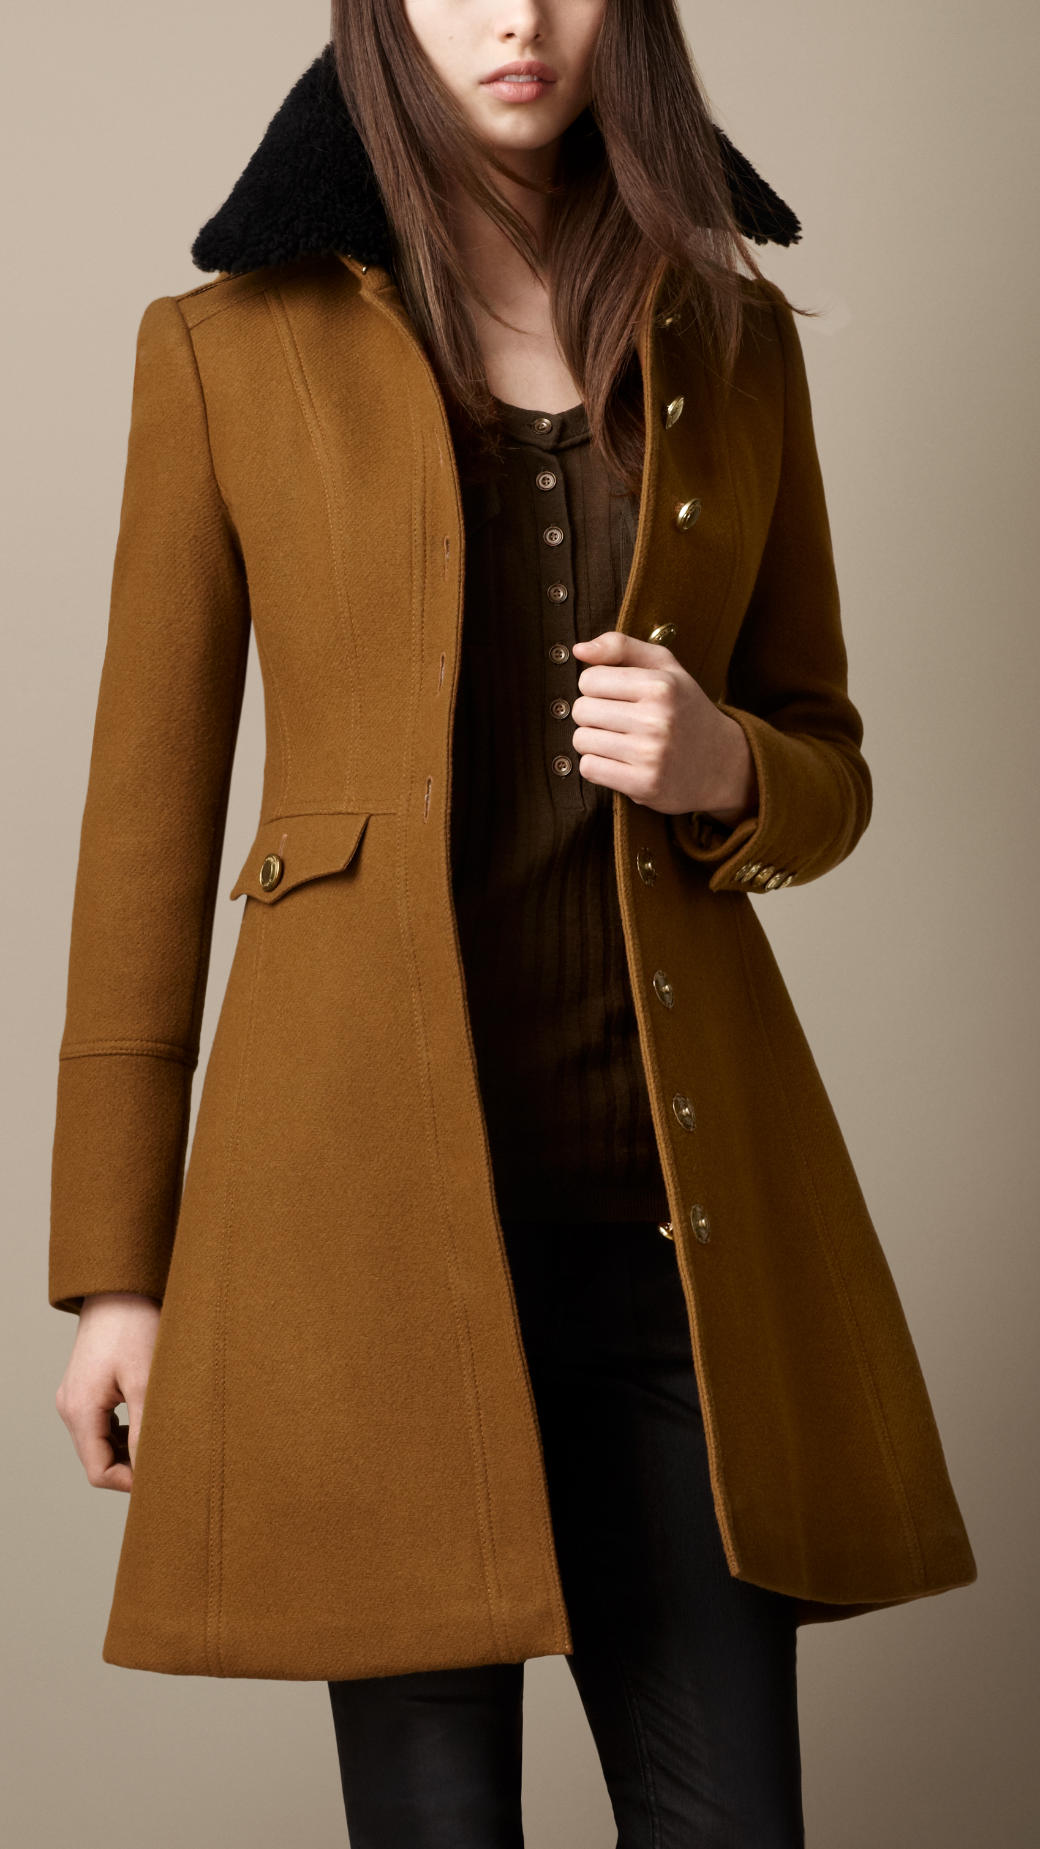 Burberry Shearling Collar Military Coat in Brown | Lyst